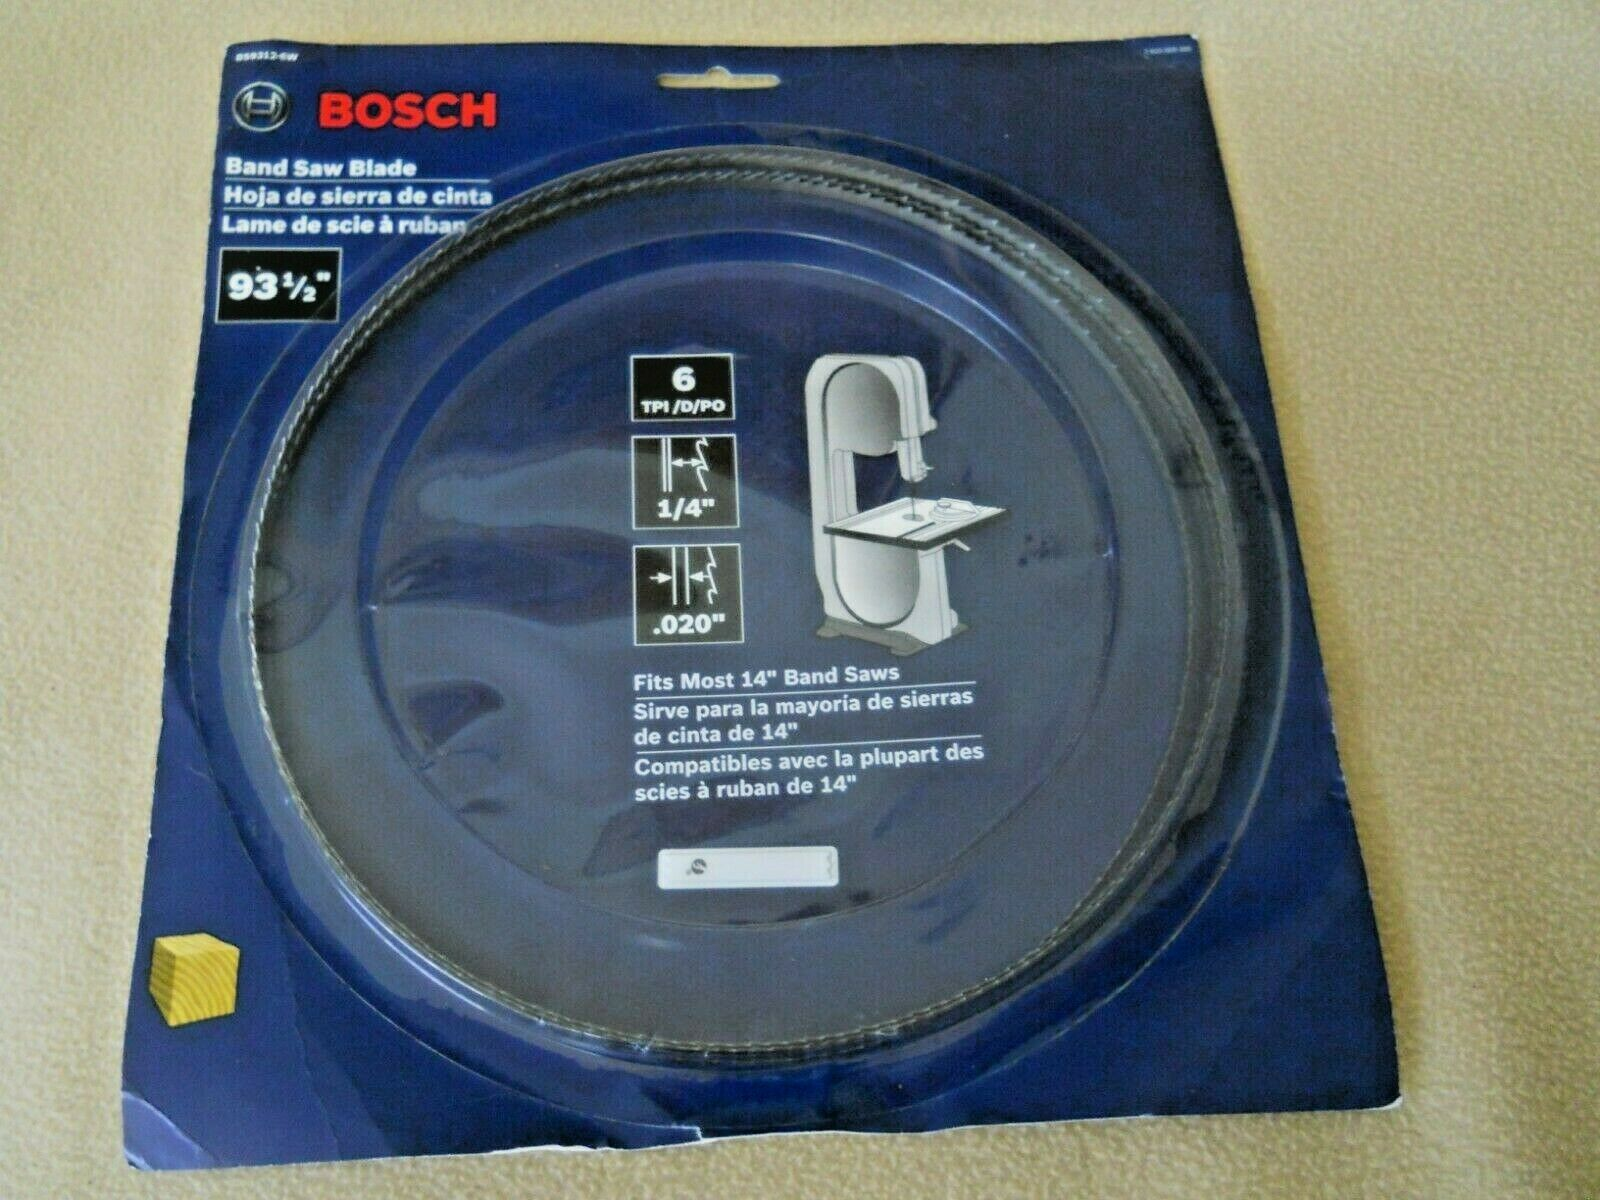 """Bosch 1/4"""" Band Saw Blade for 14"""" Band Saws / 19 1/2"""" / 6 T"""